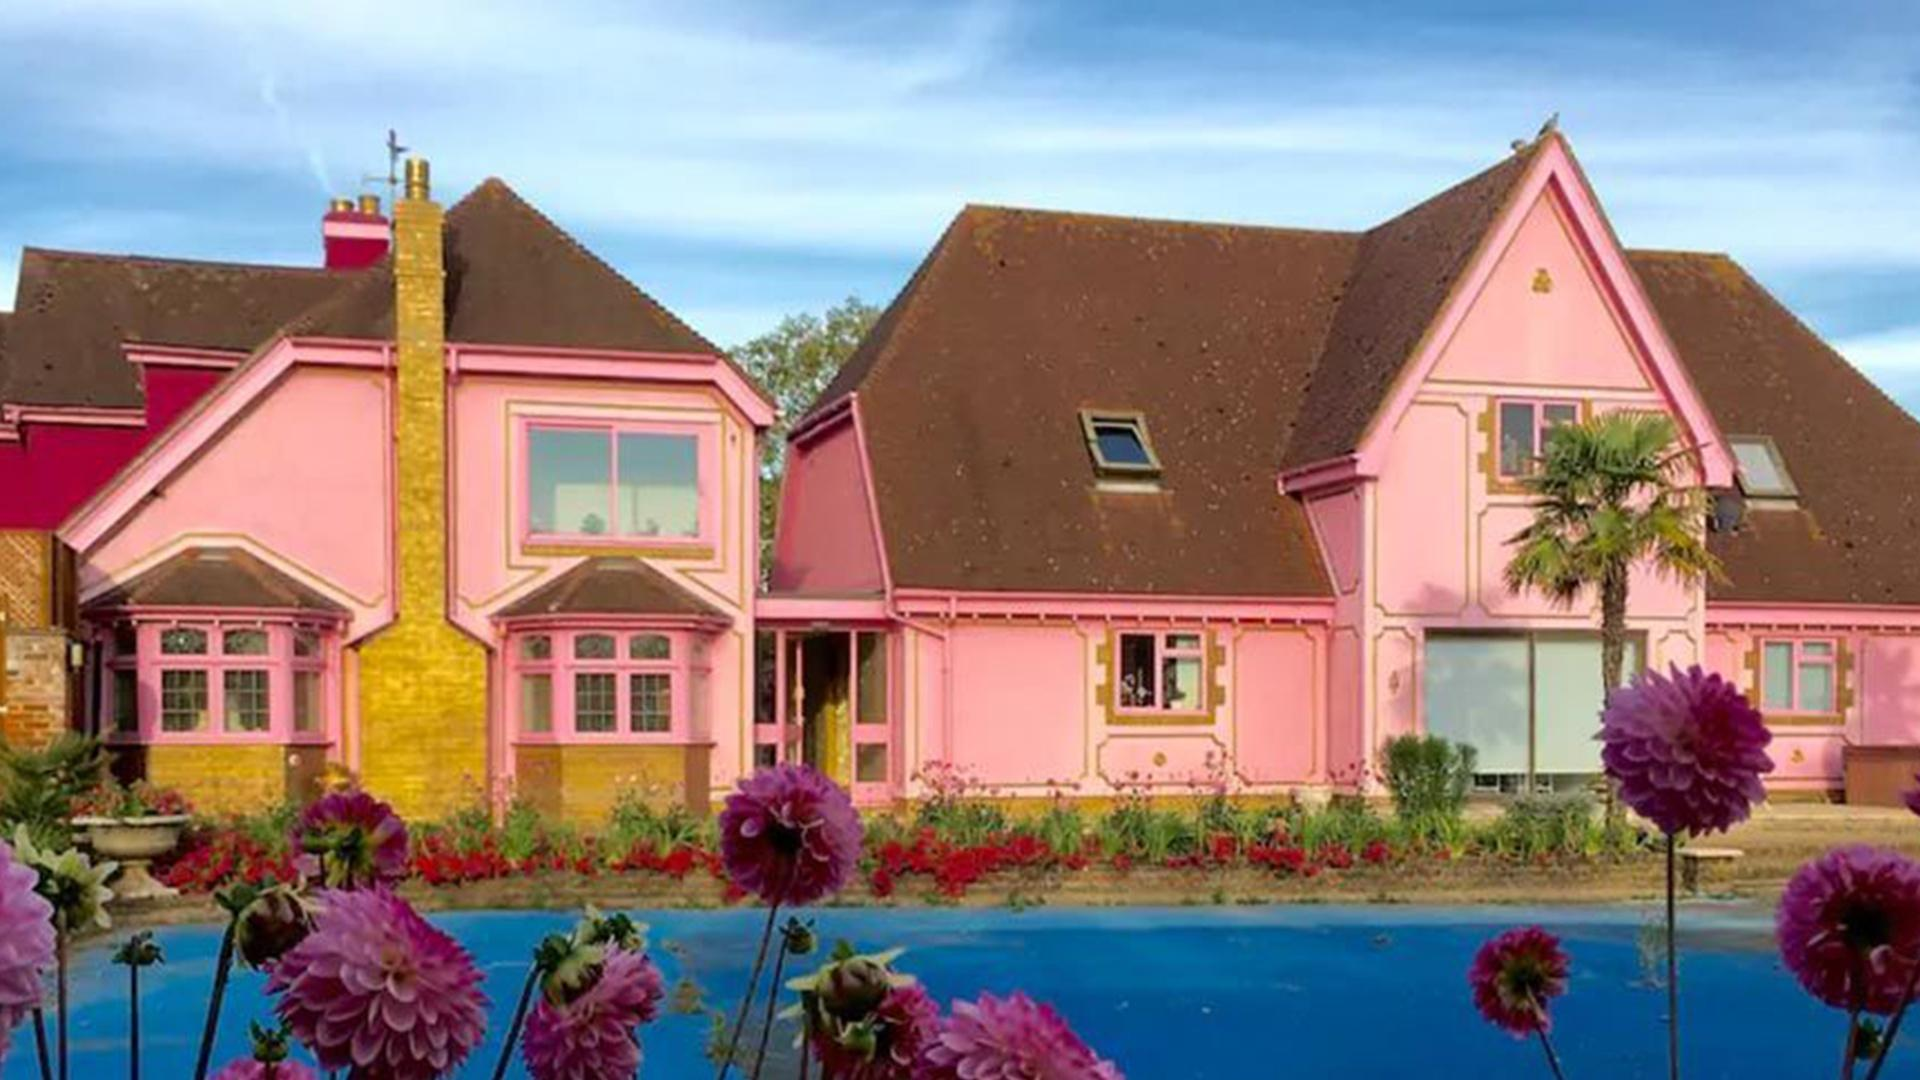 This Real-Life Barbie Dream House Is a Literal Dream Come True